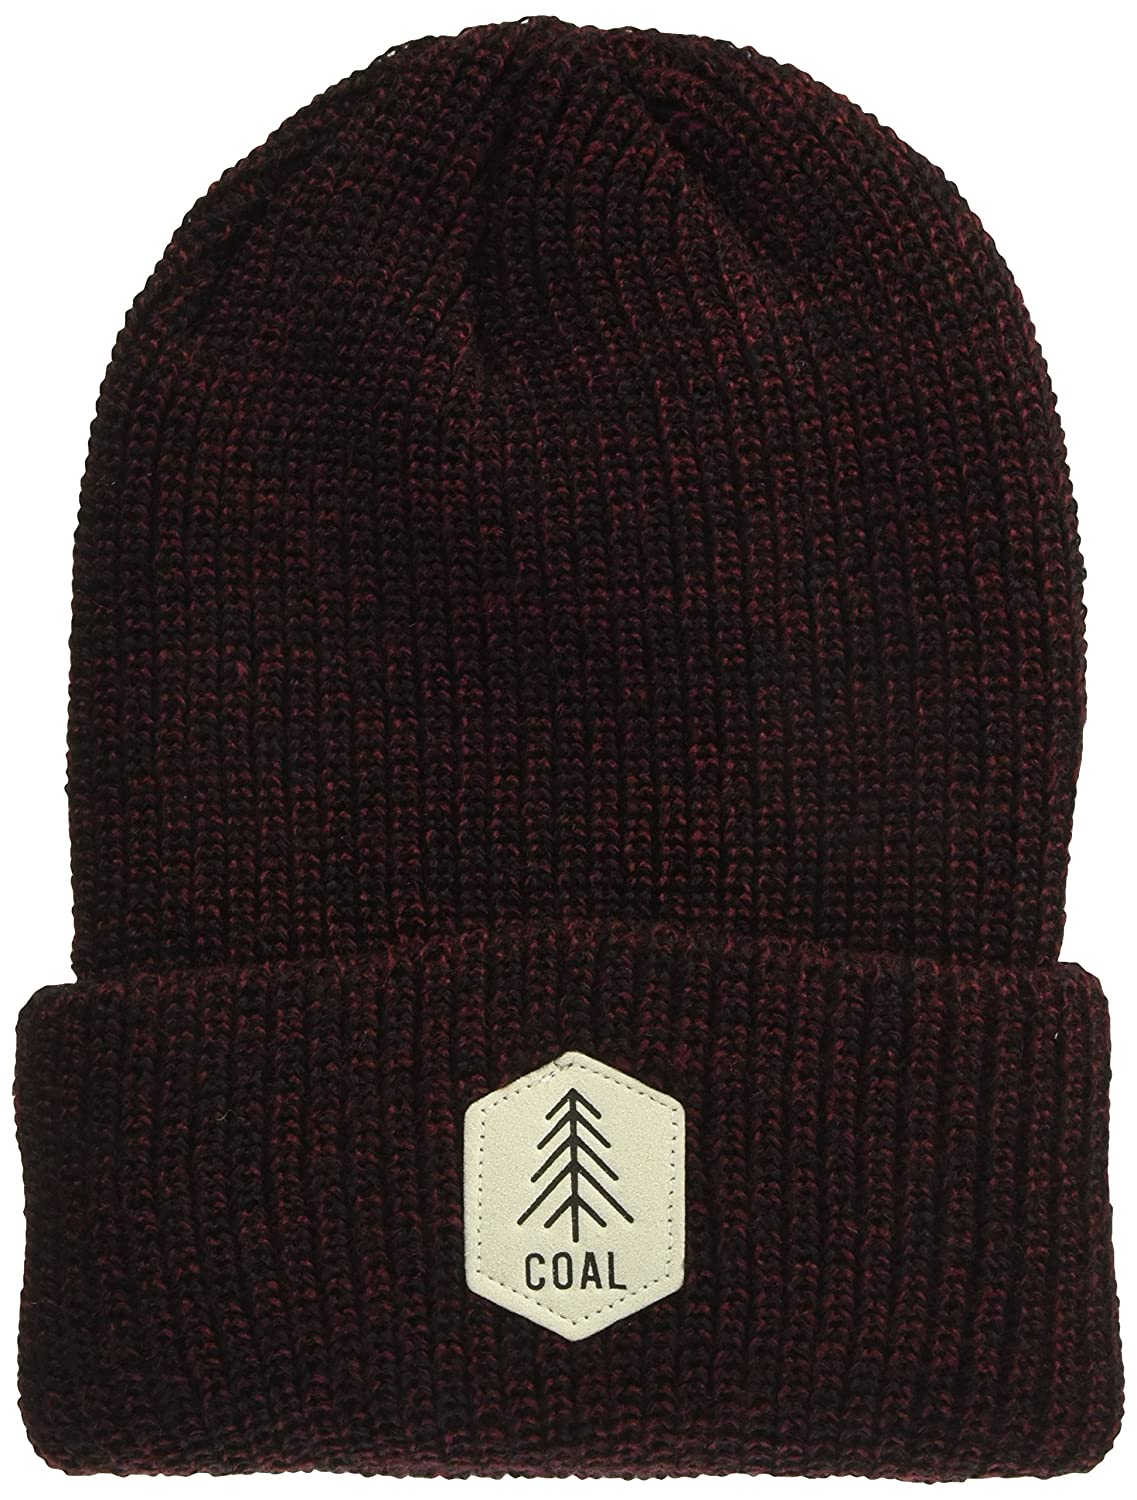 Coal Mens The Scout Classic Rib Knit Cuffed Beanie Hat Coal Young Men/'s 20580